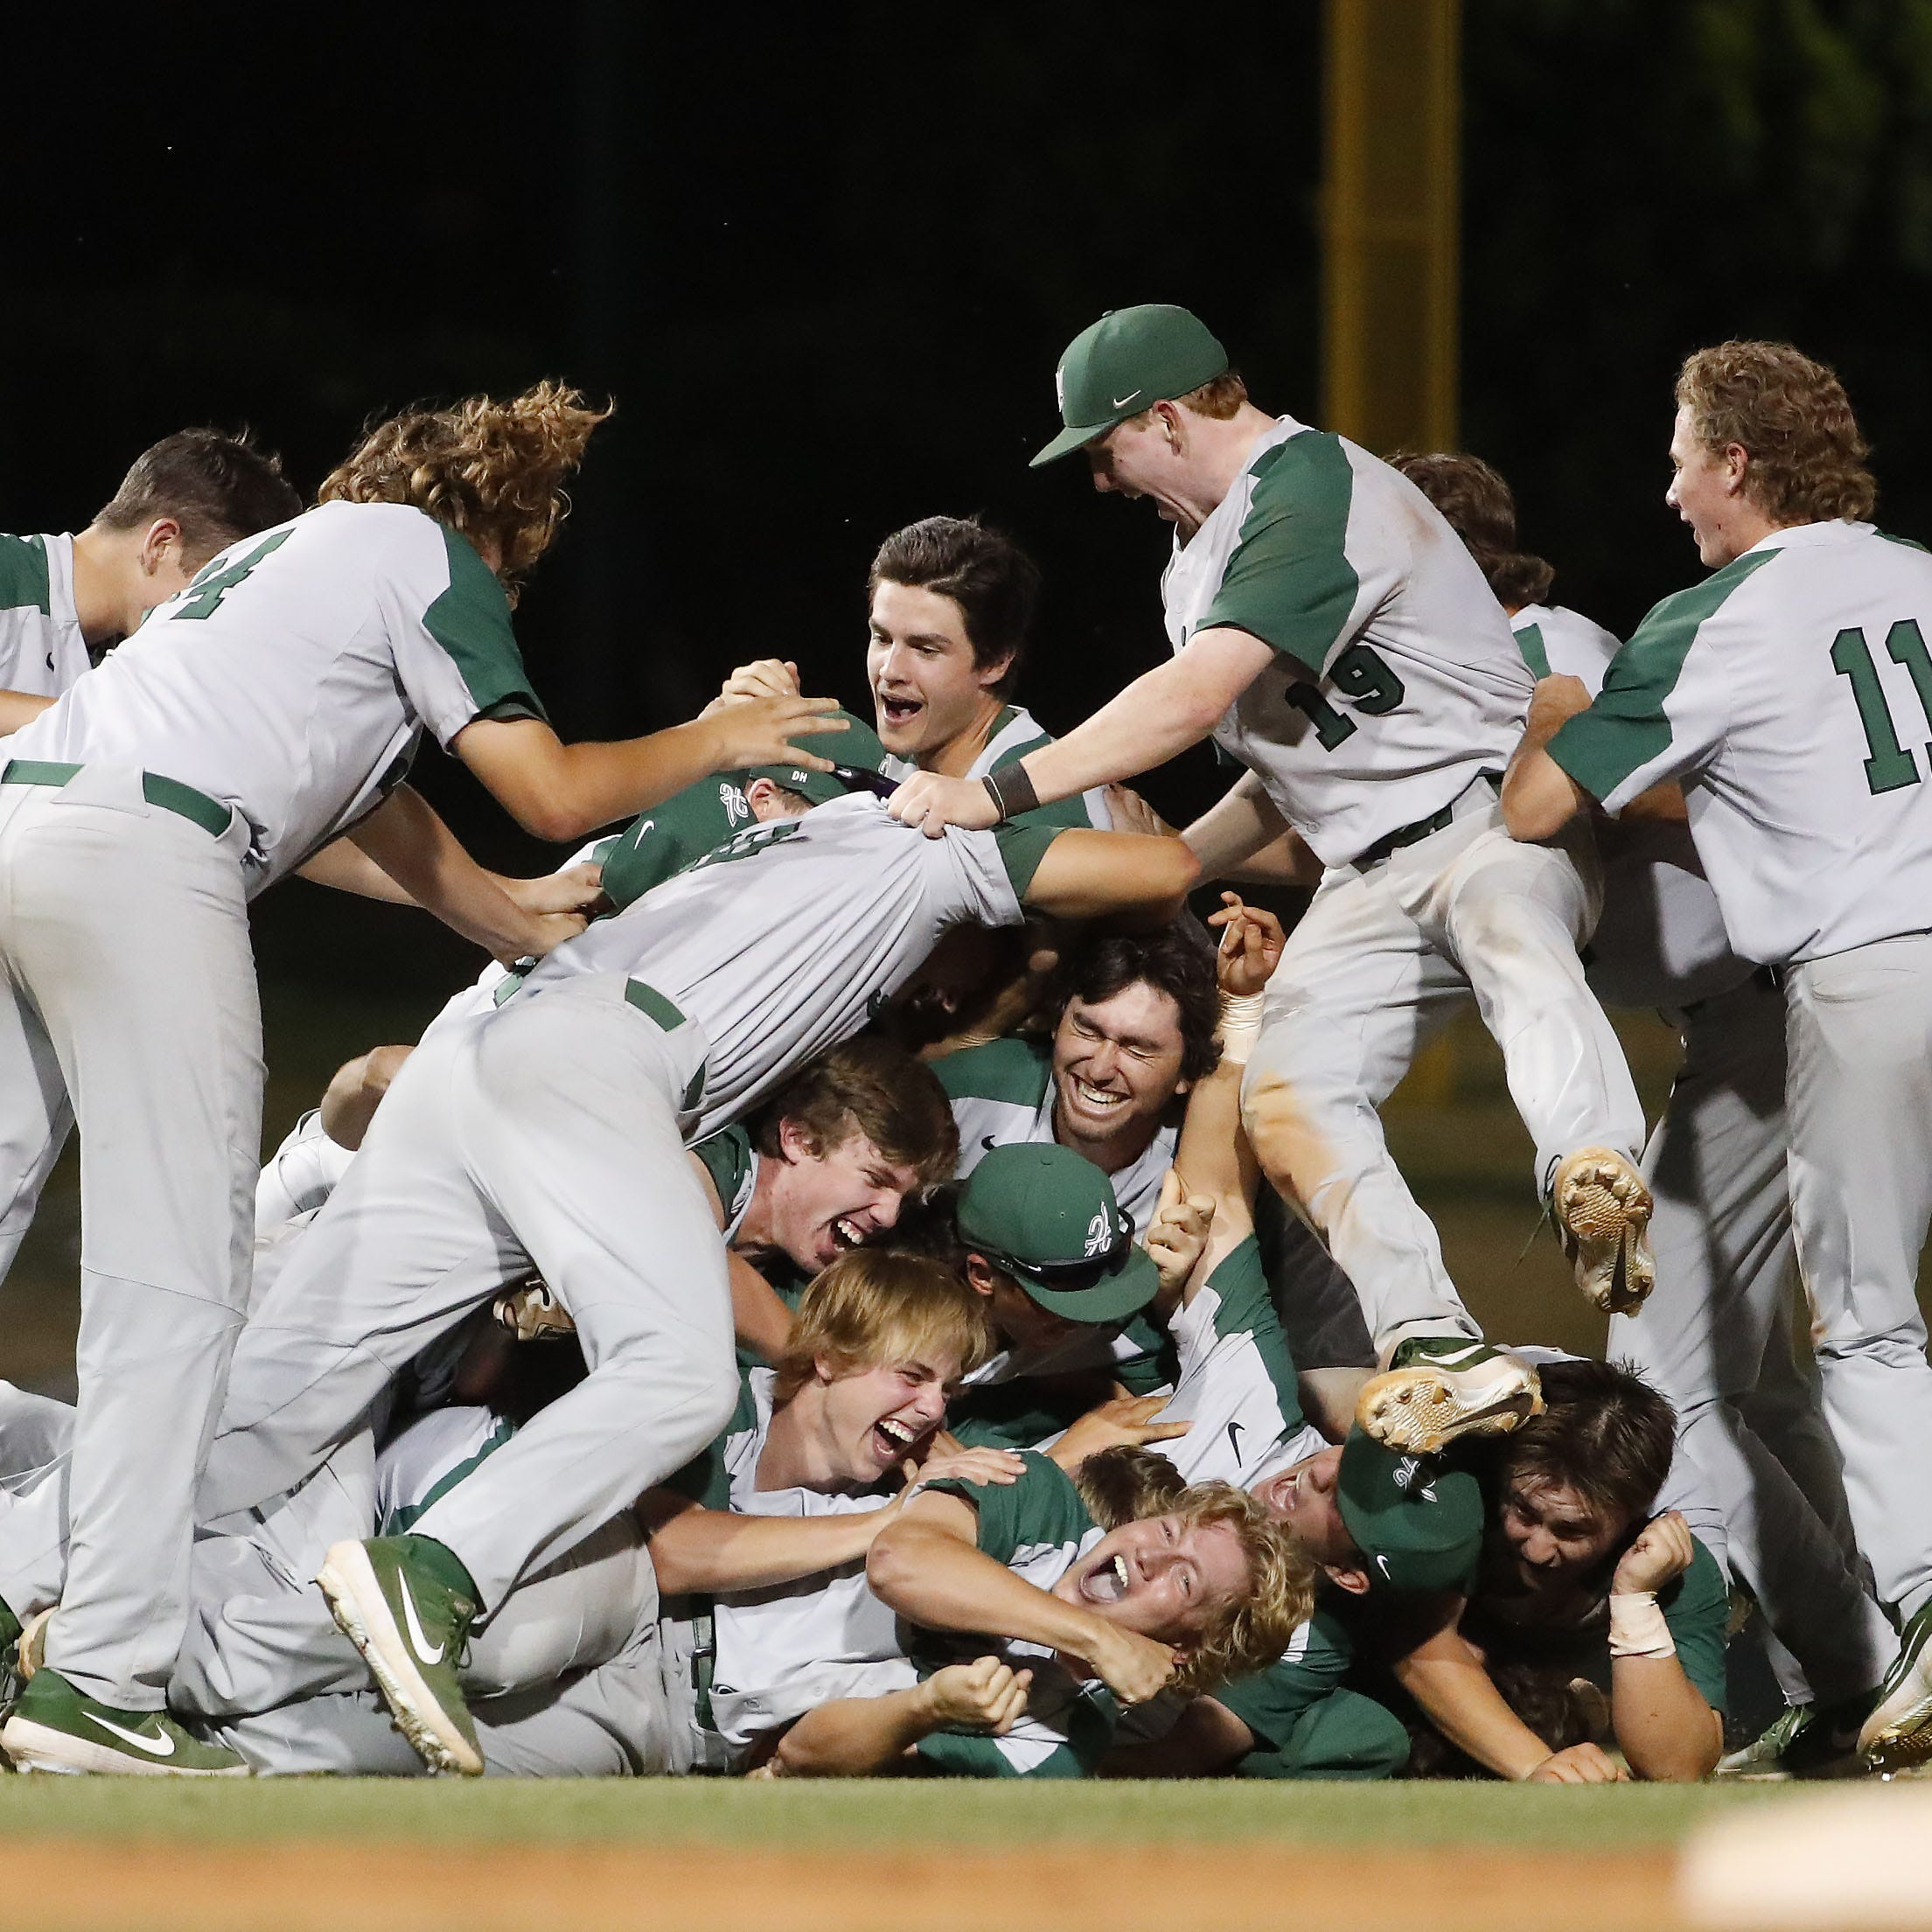 Horizon outlasts Nogales in longest game in Arizona HS baseball championship history